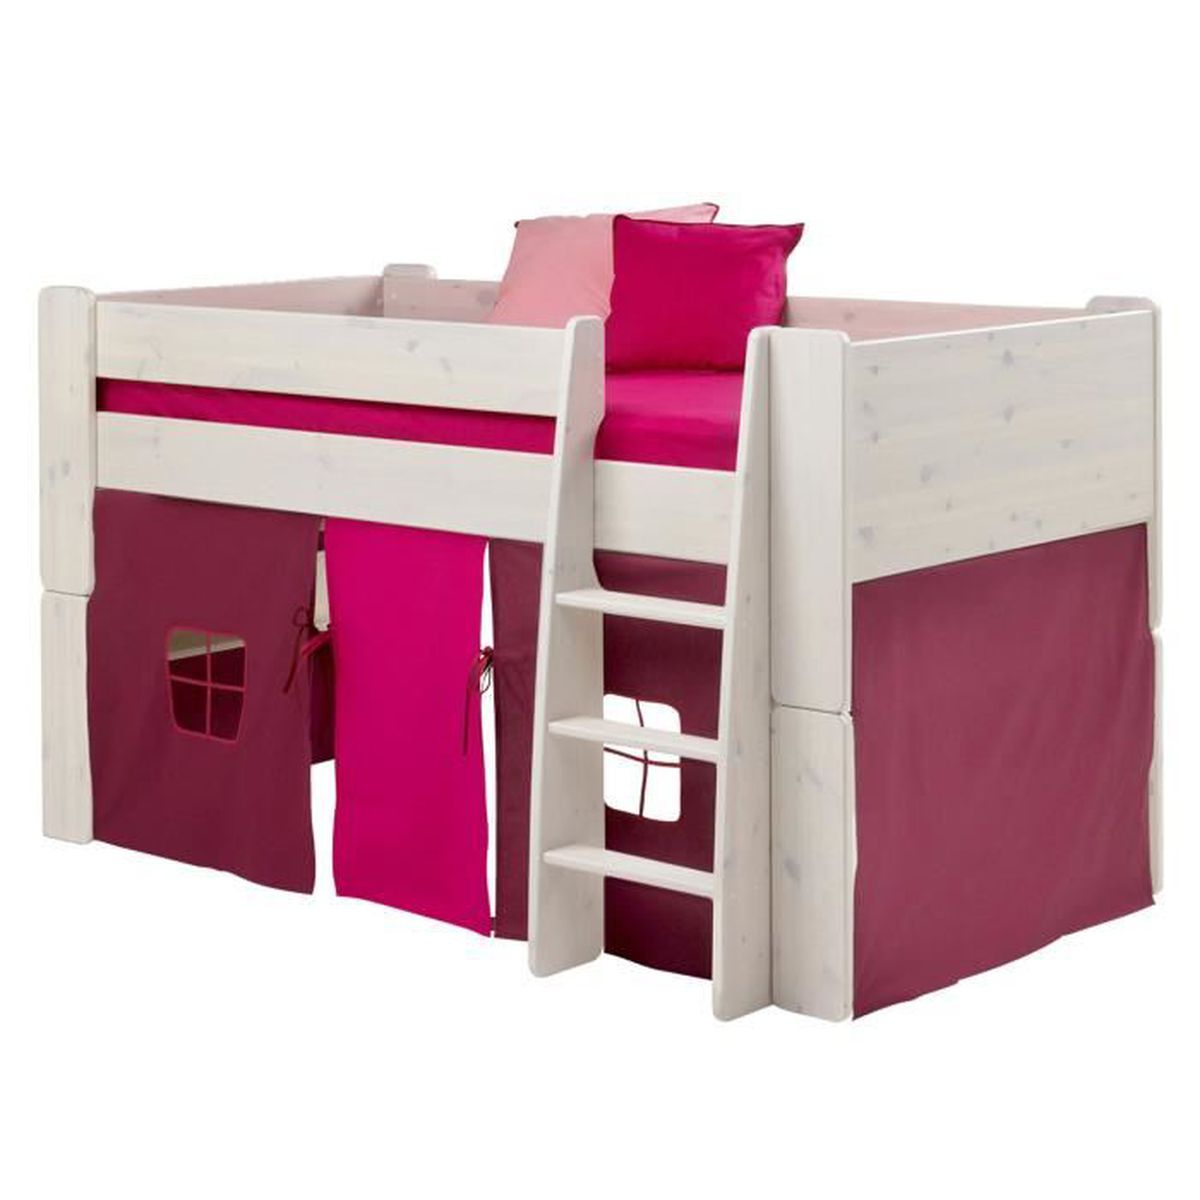 lit mi hauteur en mdf avec habillage de lit rose violet achat vente lits superpos s lit mi. Black Bedroom Furniture Sets. Home Design Ideas